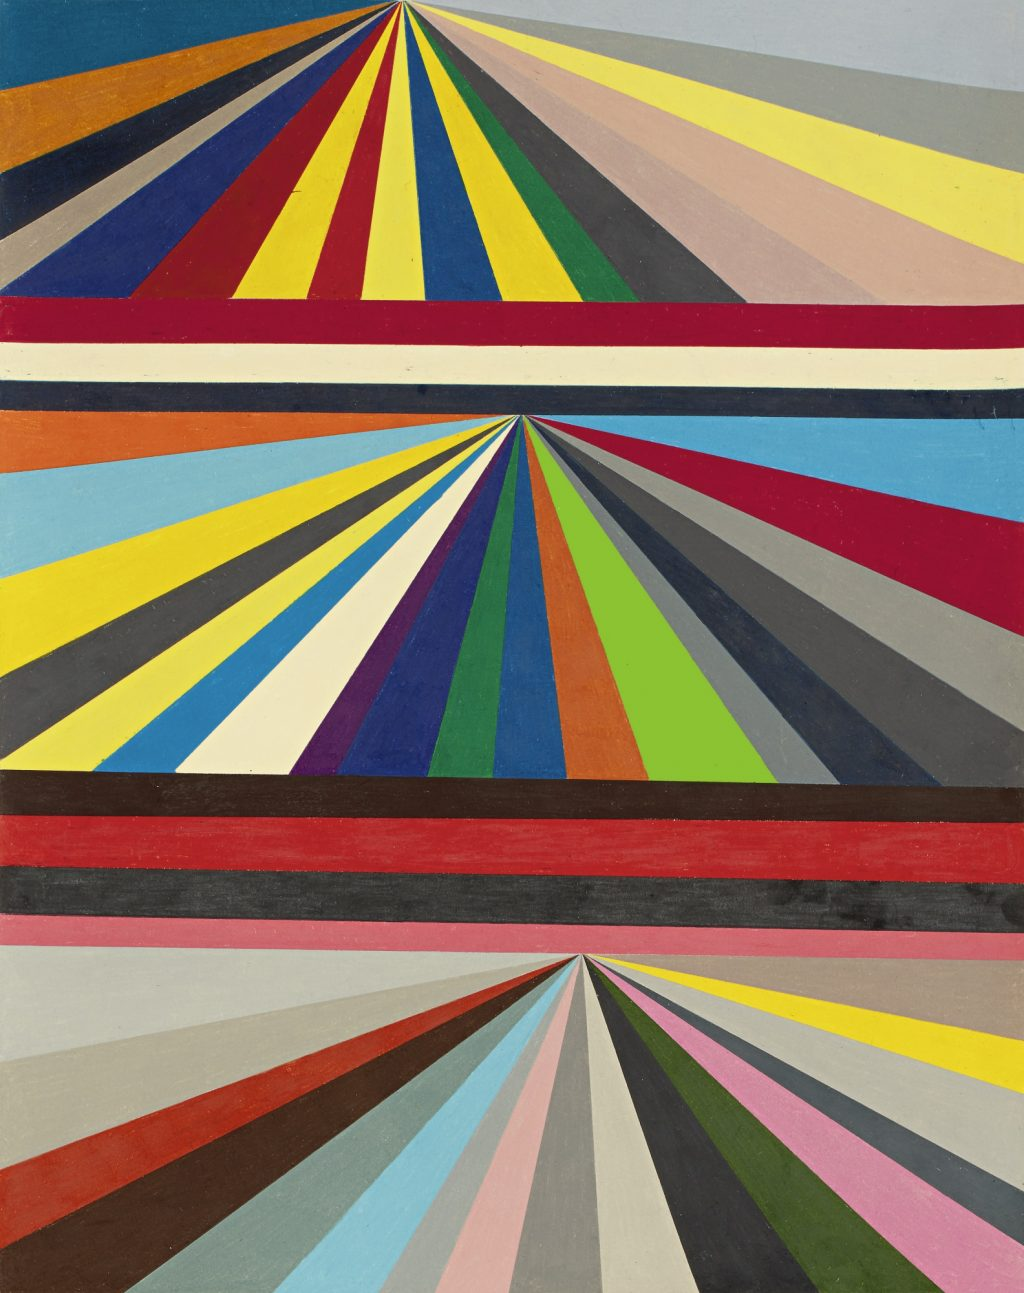 Mark Grotjahn Untitled Three-Tiered Perspective 2000, unsold Sotheby's Sept. 2018